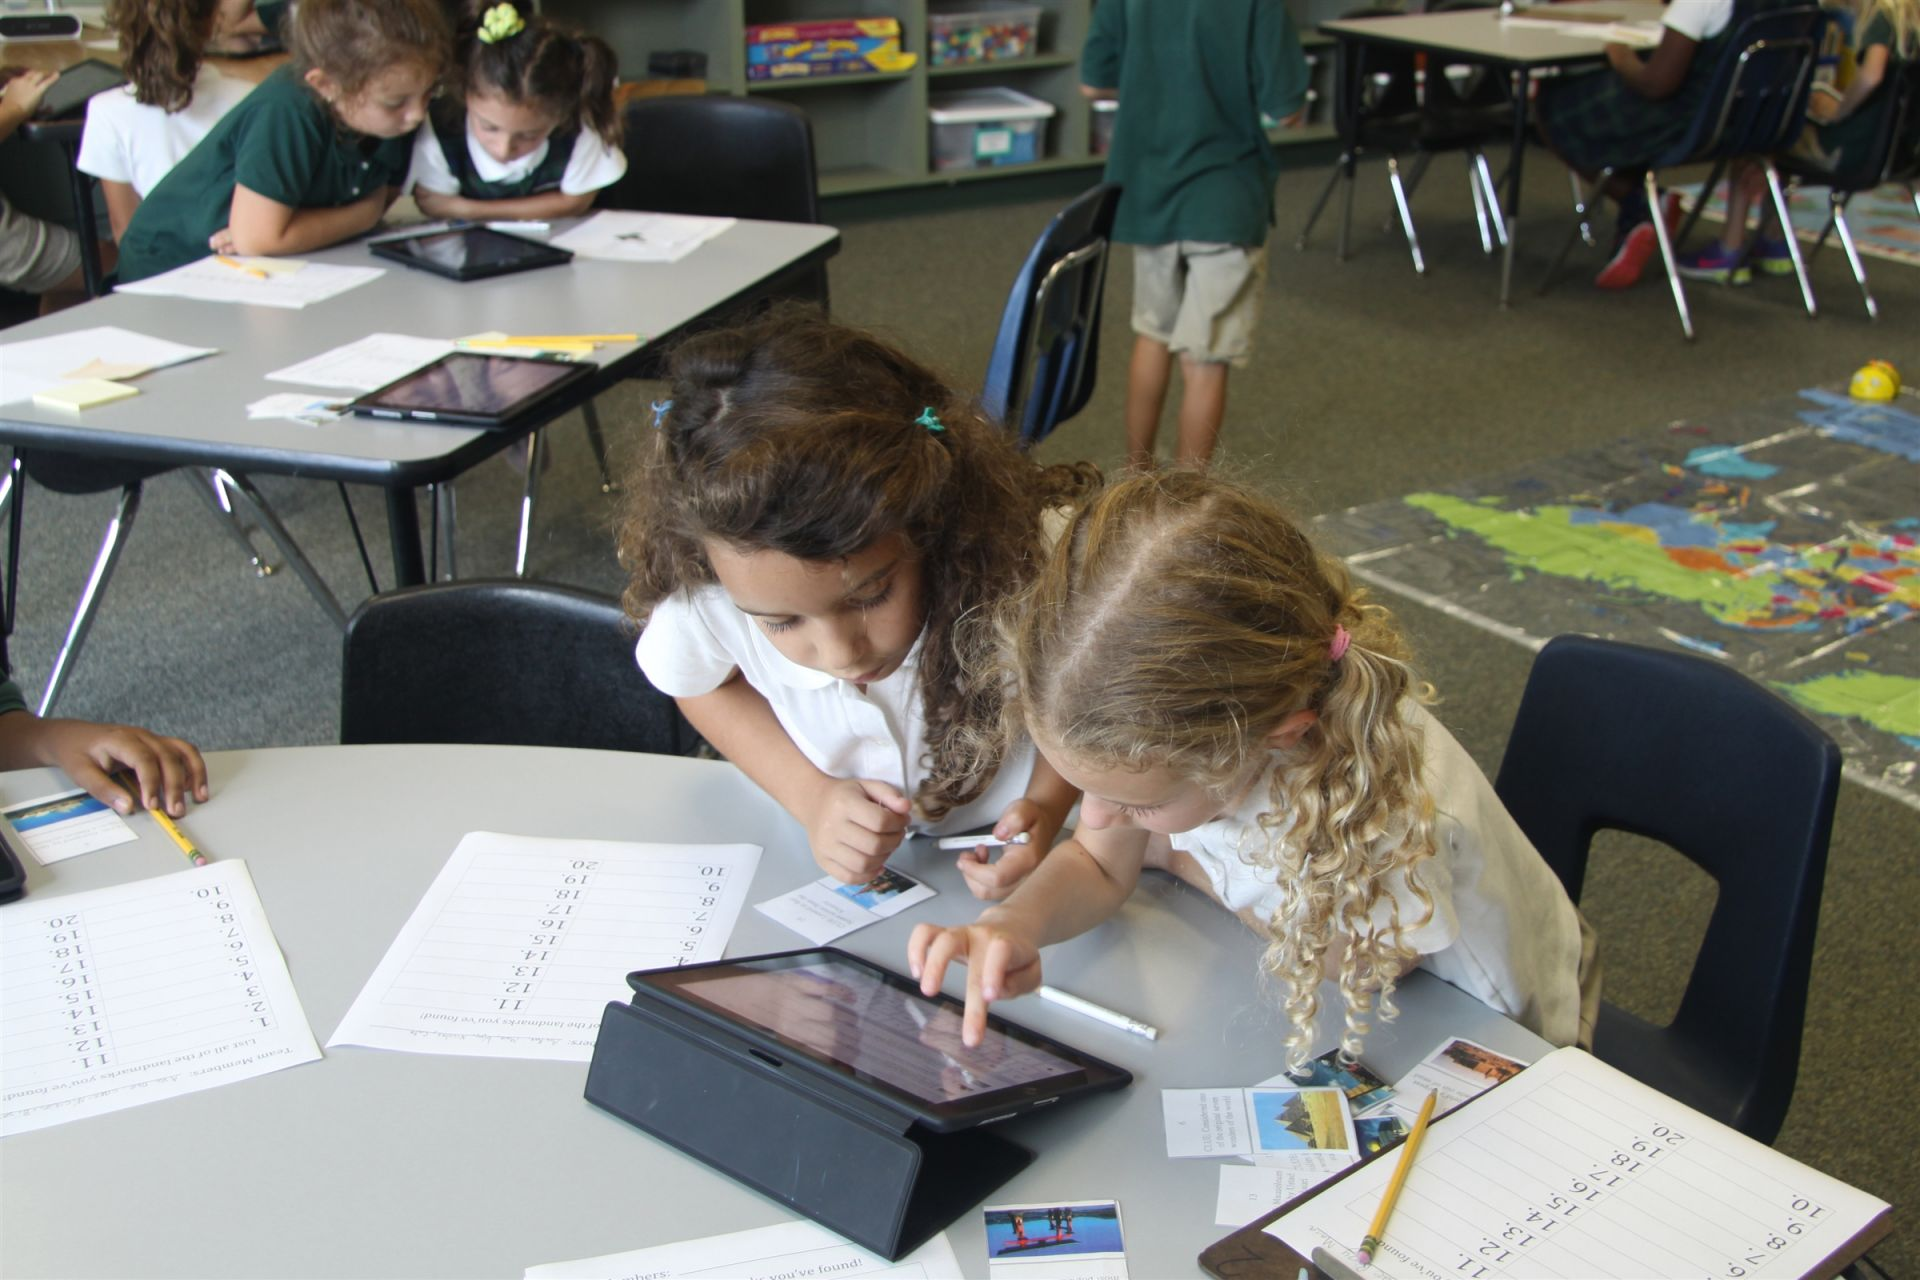 Lower School ipad